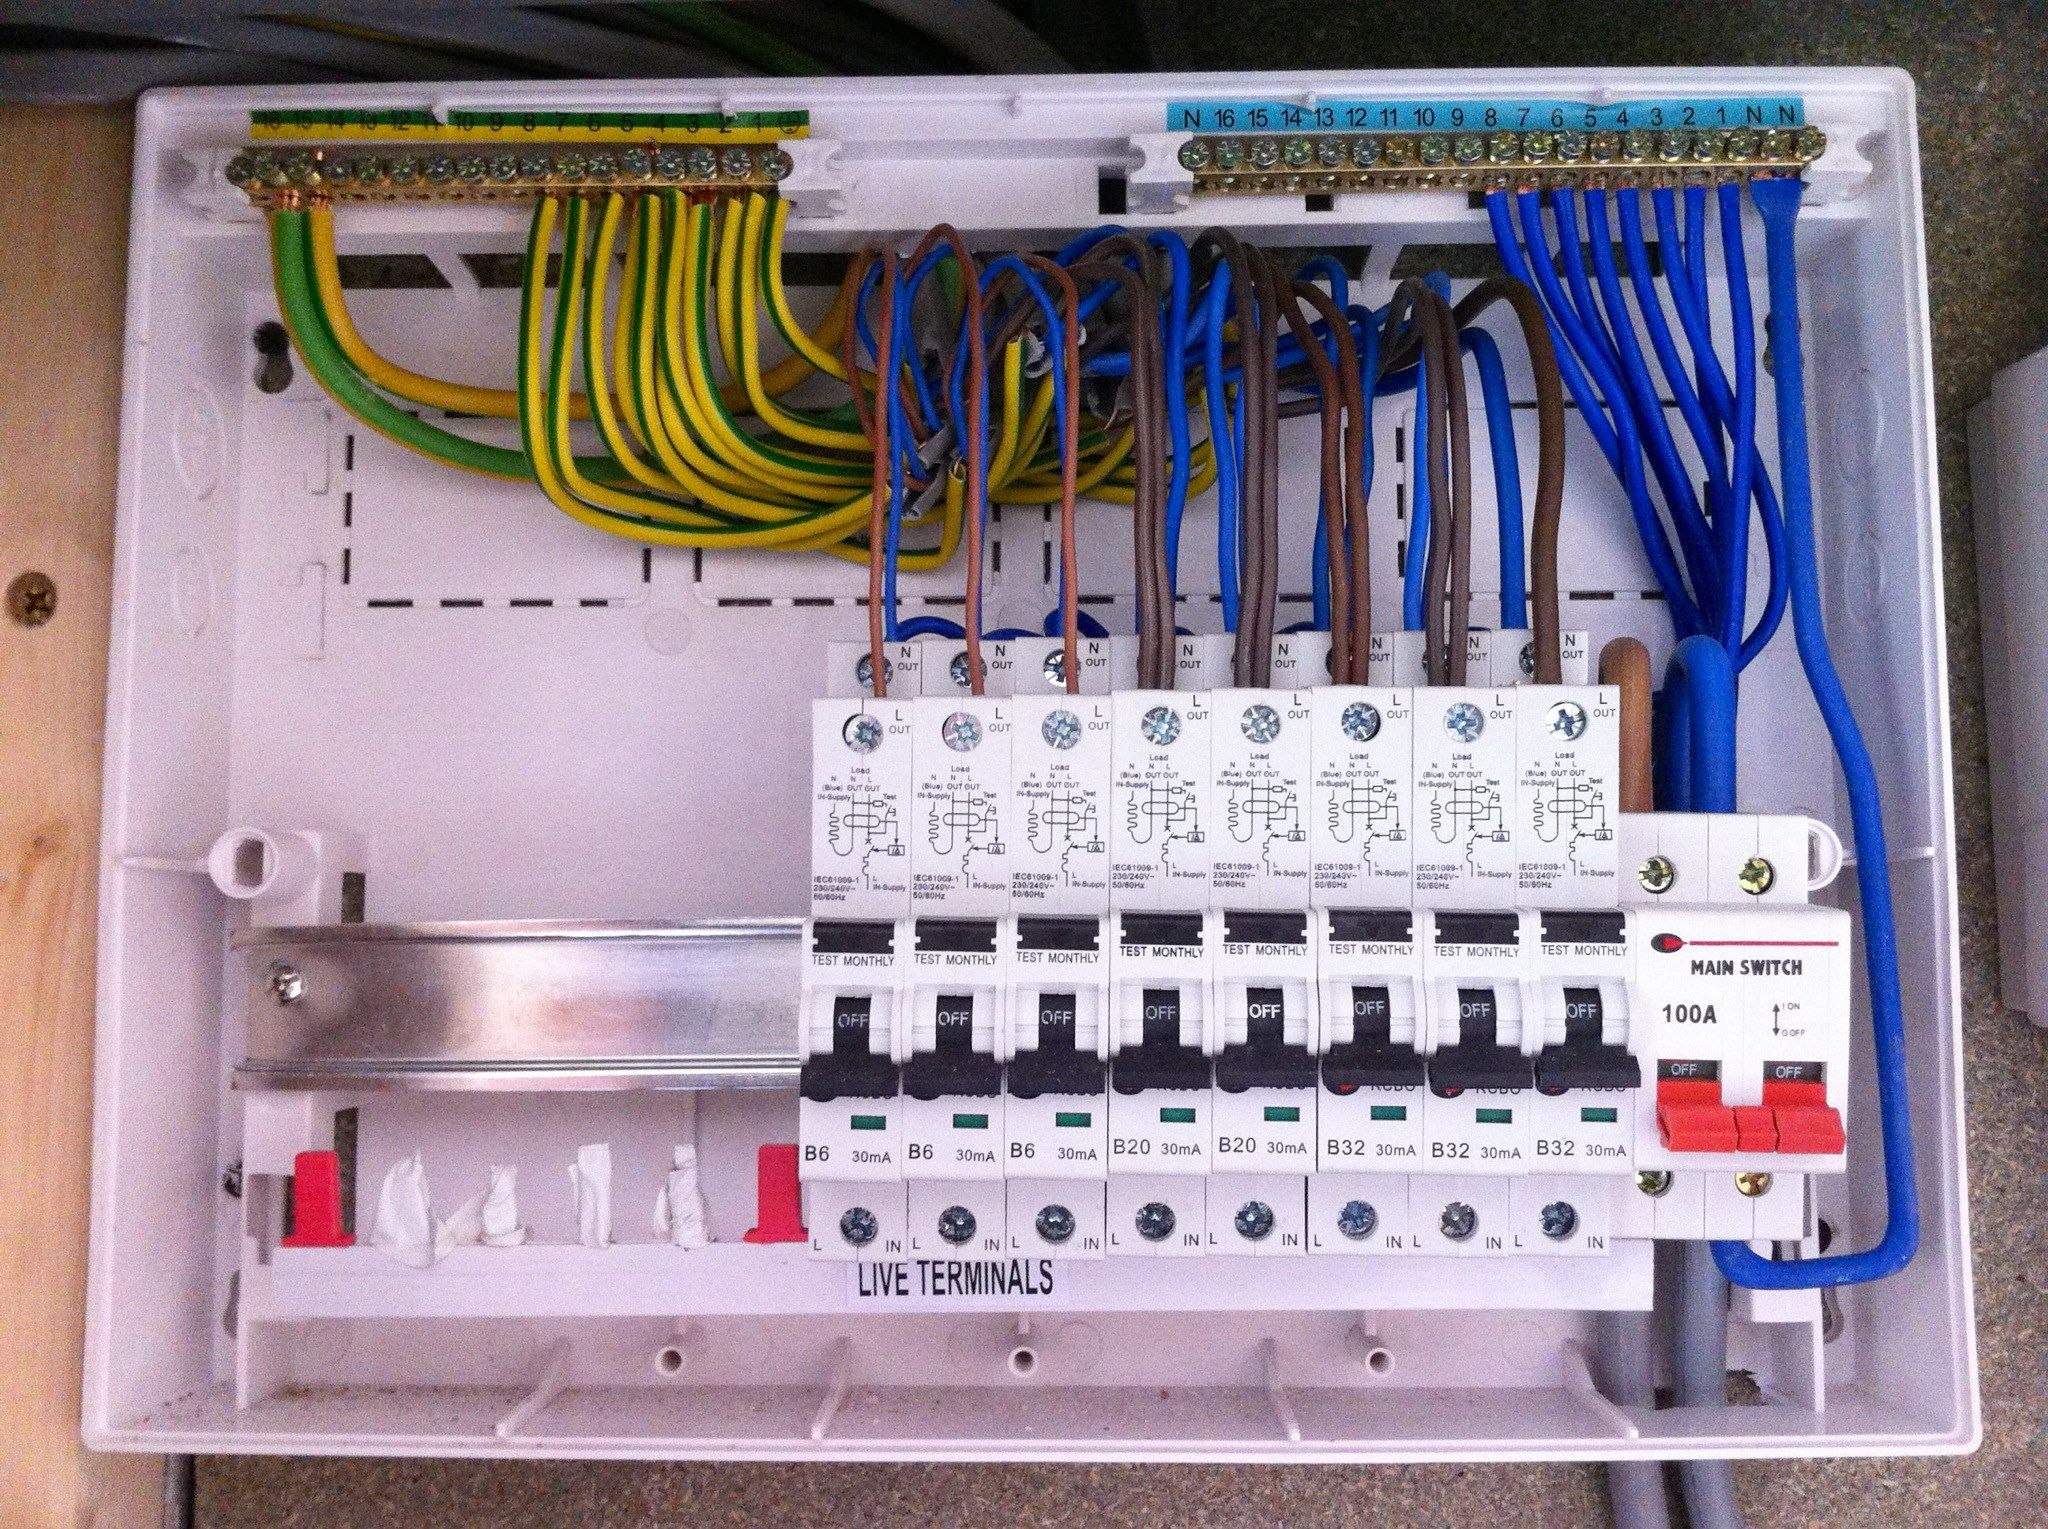 A Close Up Of An Rcbo Consumer Unit With The Cover Removed Ready For Inspection Testing Instalacoes Eletricas Eletrica Predial Manutencao Eletrica